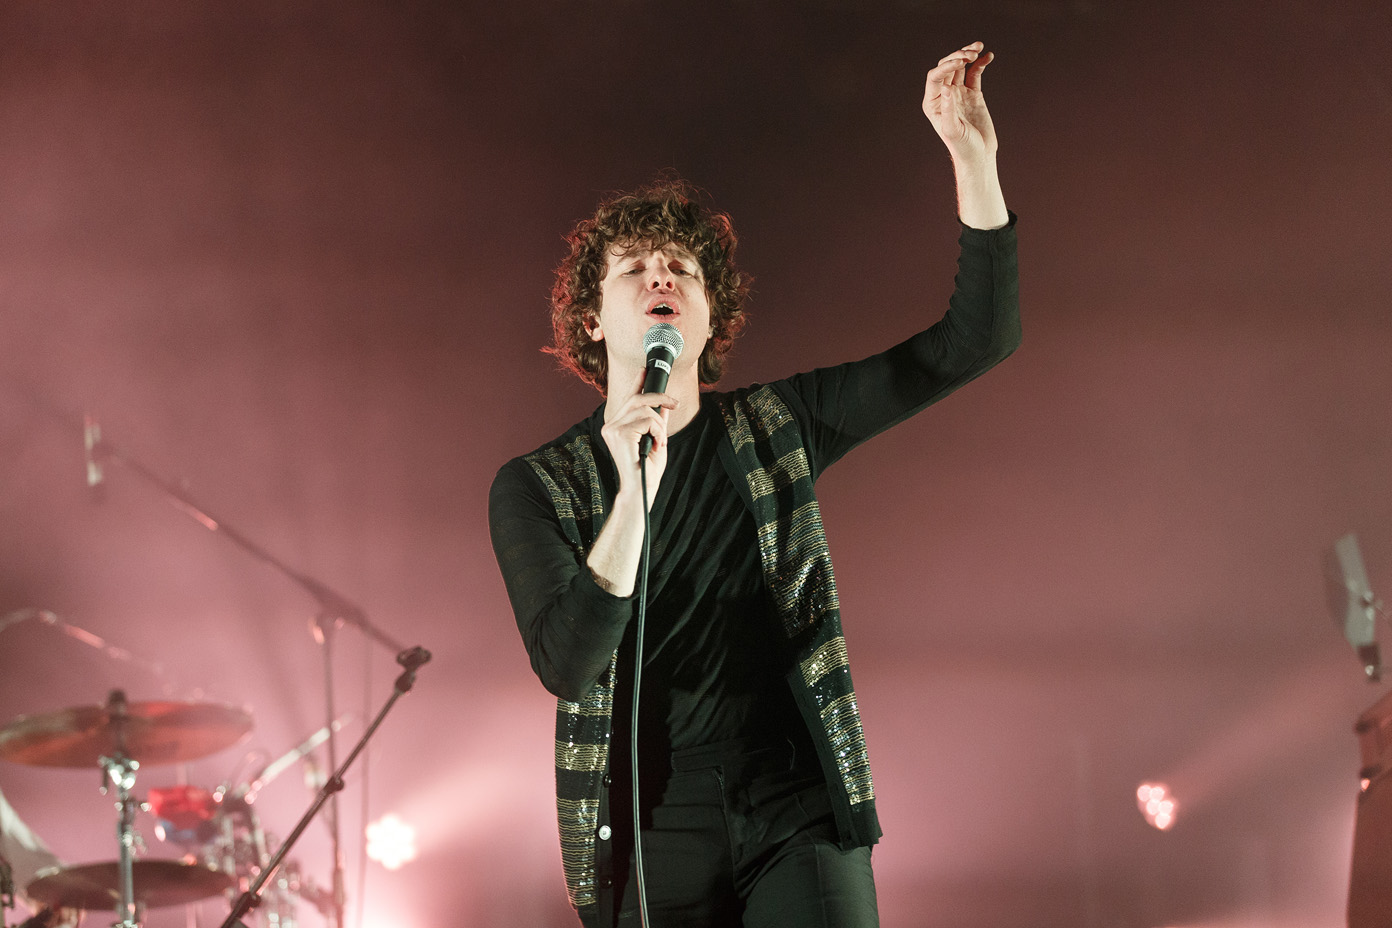 Luke Pritchard of The Kooks on stage at Liverpool Sound City 2017